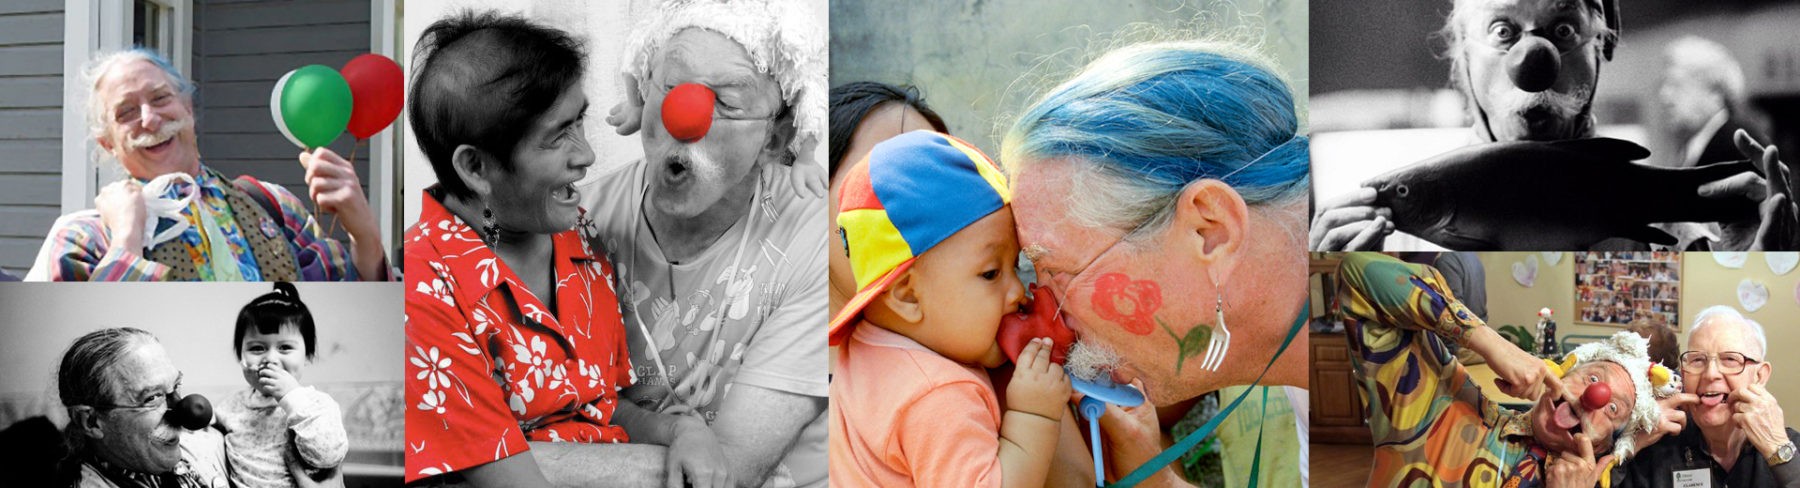 Patch adams md west virginia